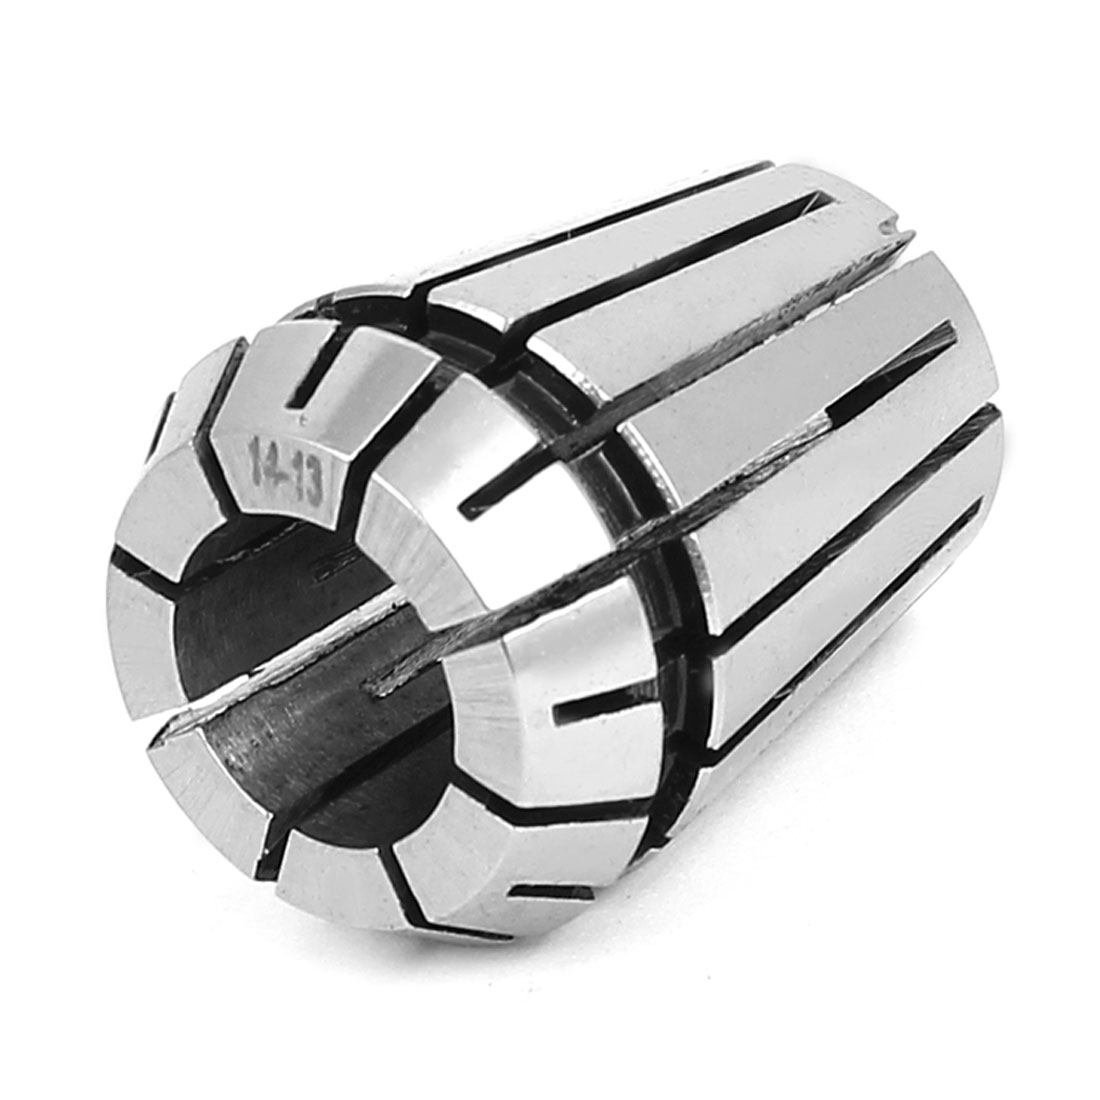 ER25 14mm Clamping Dia CNC Engraving Milling Machine Spring Collet